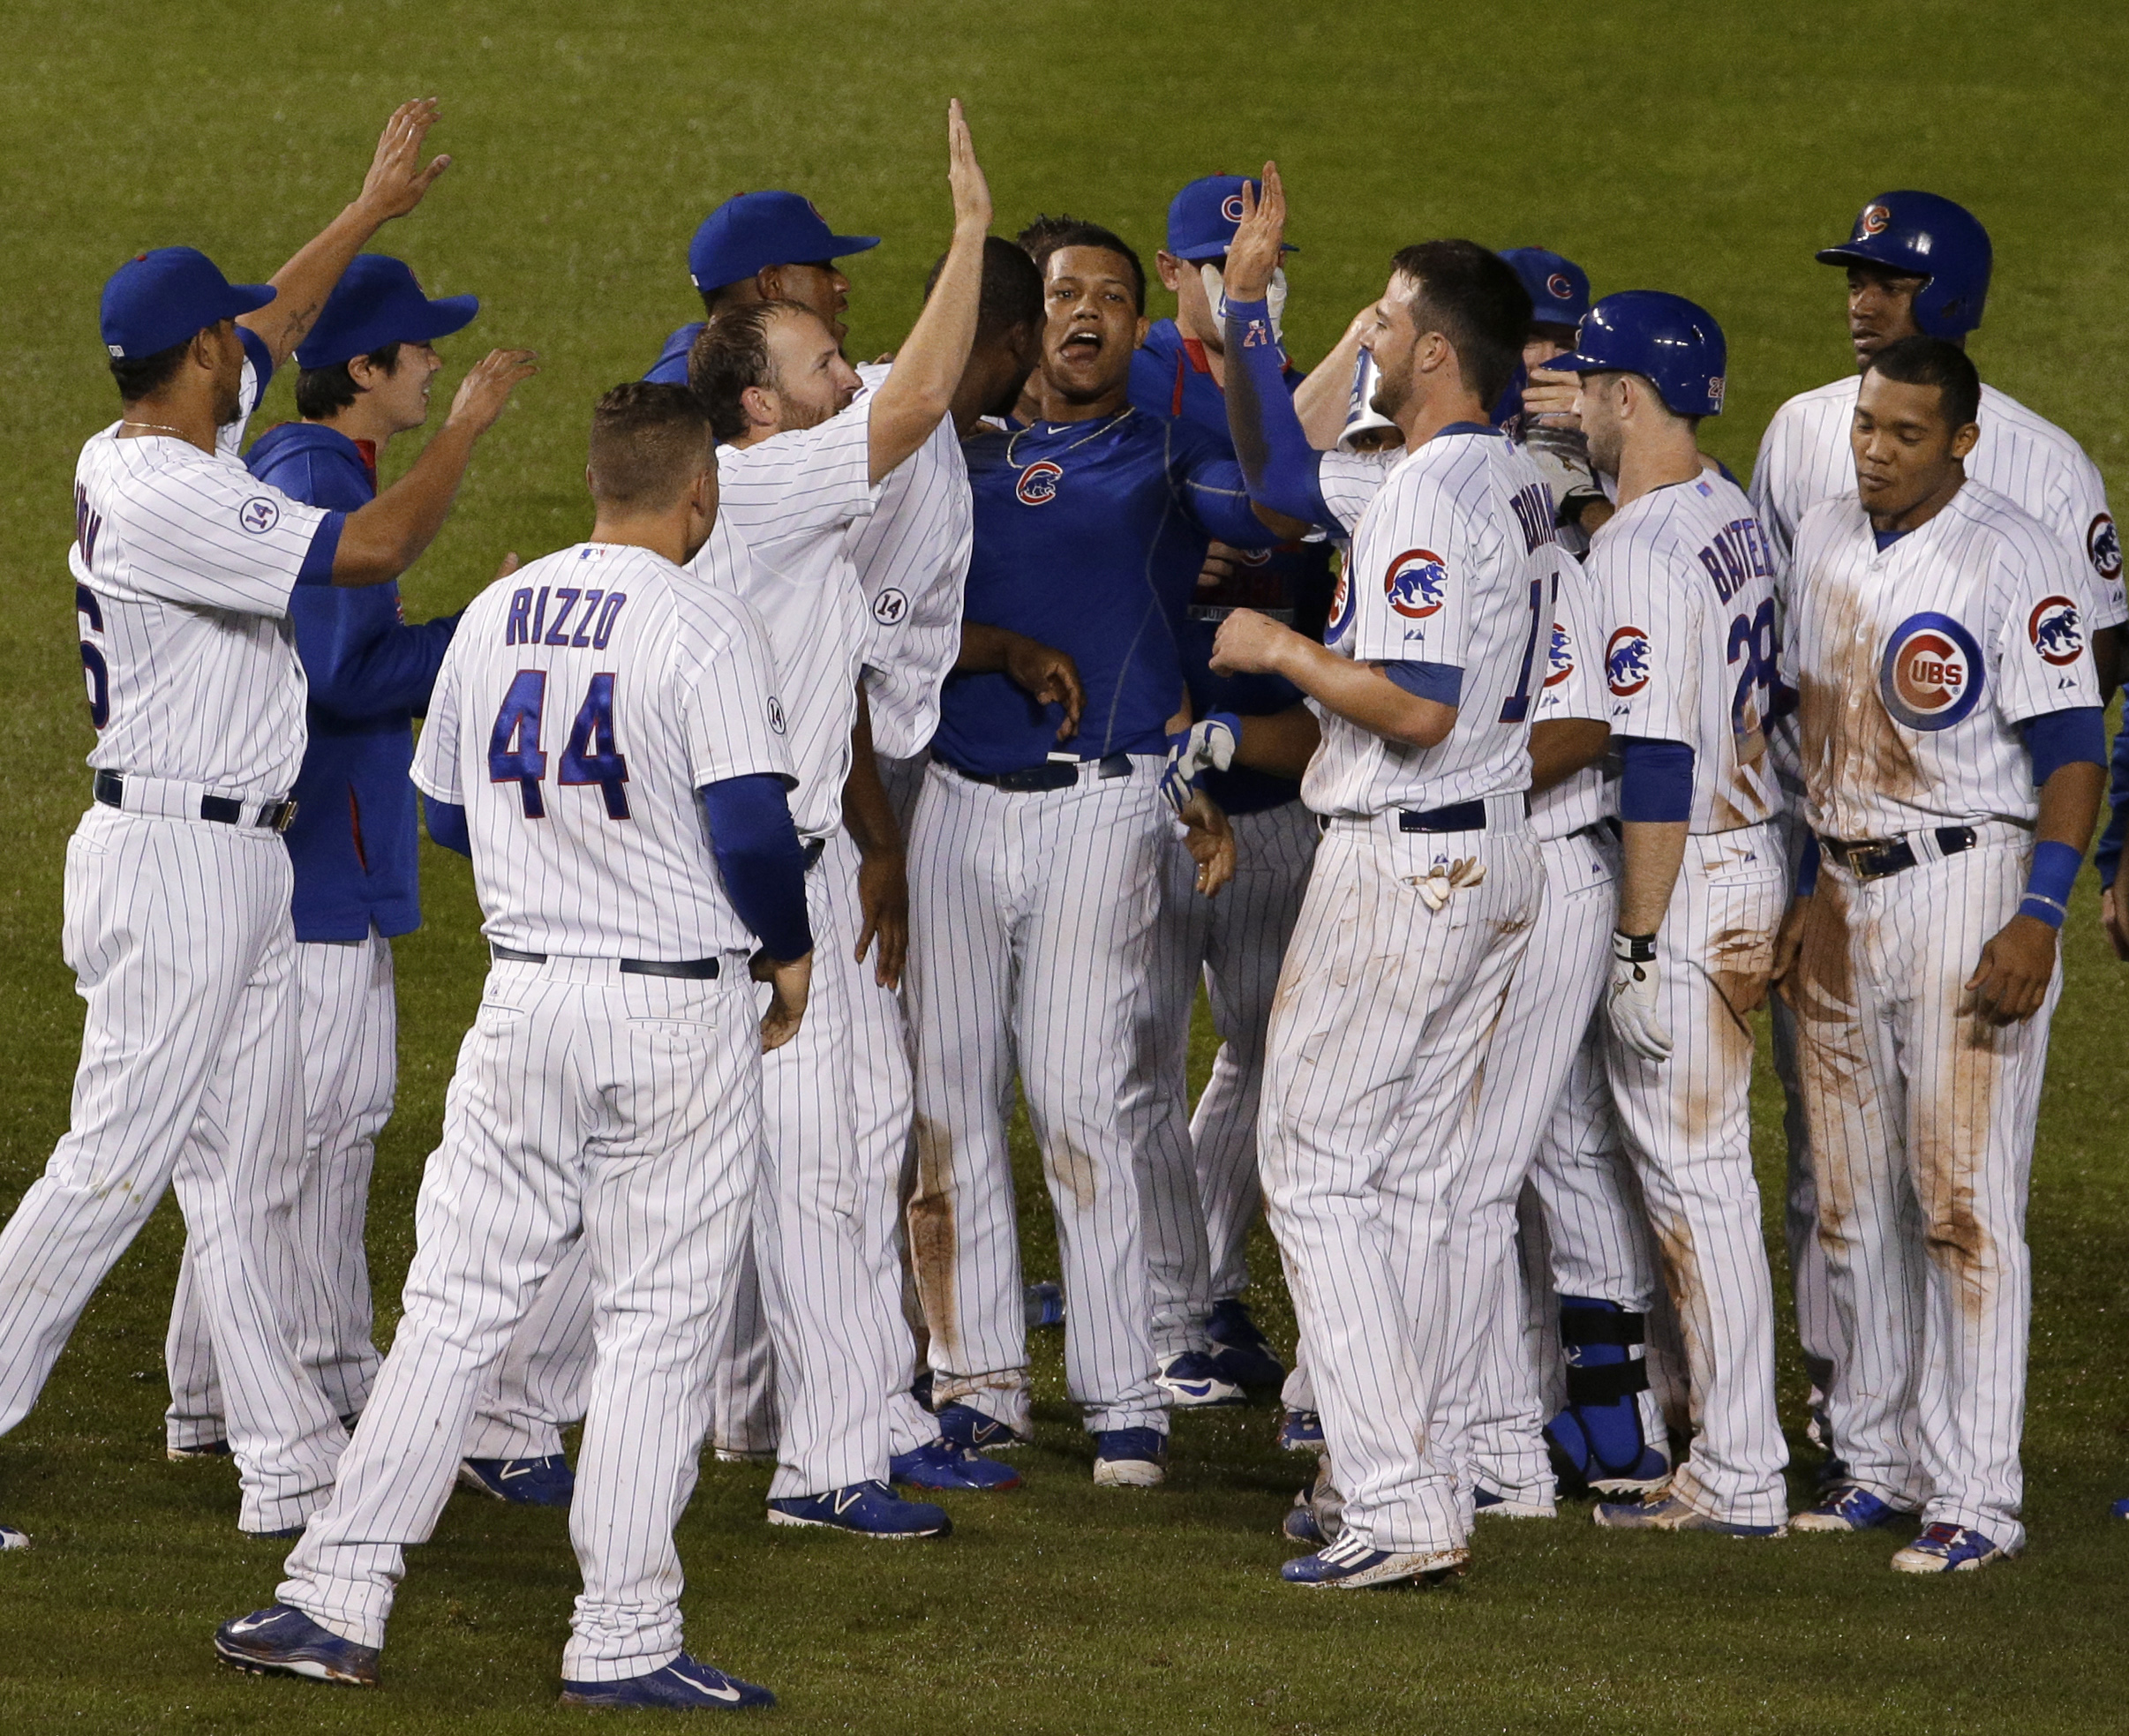 Chicago Cubs' Starlin Castro, center, celebrate with teammates after hitting the game-winning single during the ninth inning of a baseball game against the Cincinnati Reds on Saturday, June 13, 2015, in Chicago. The Cubs won 4-3. (AP Photo/Nam Y. Huh)